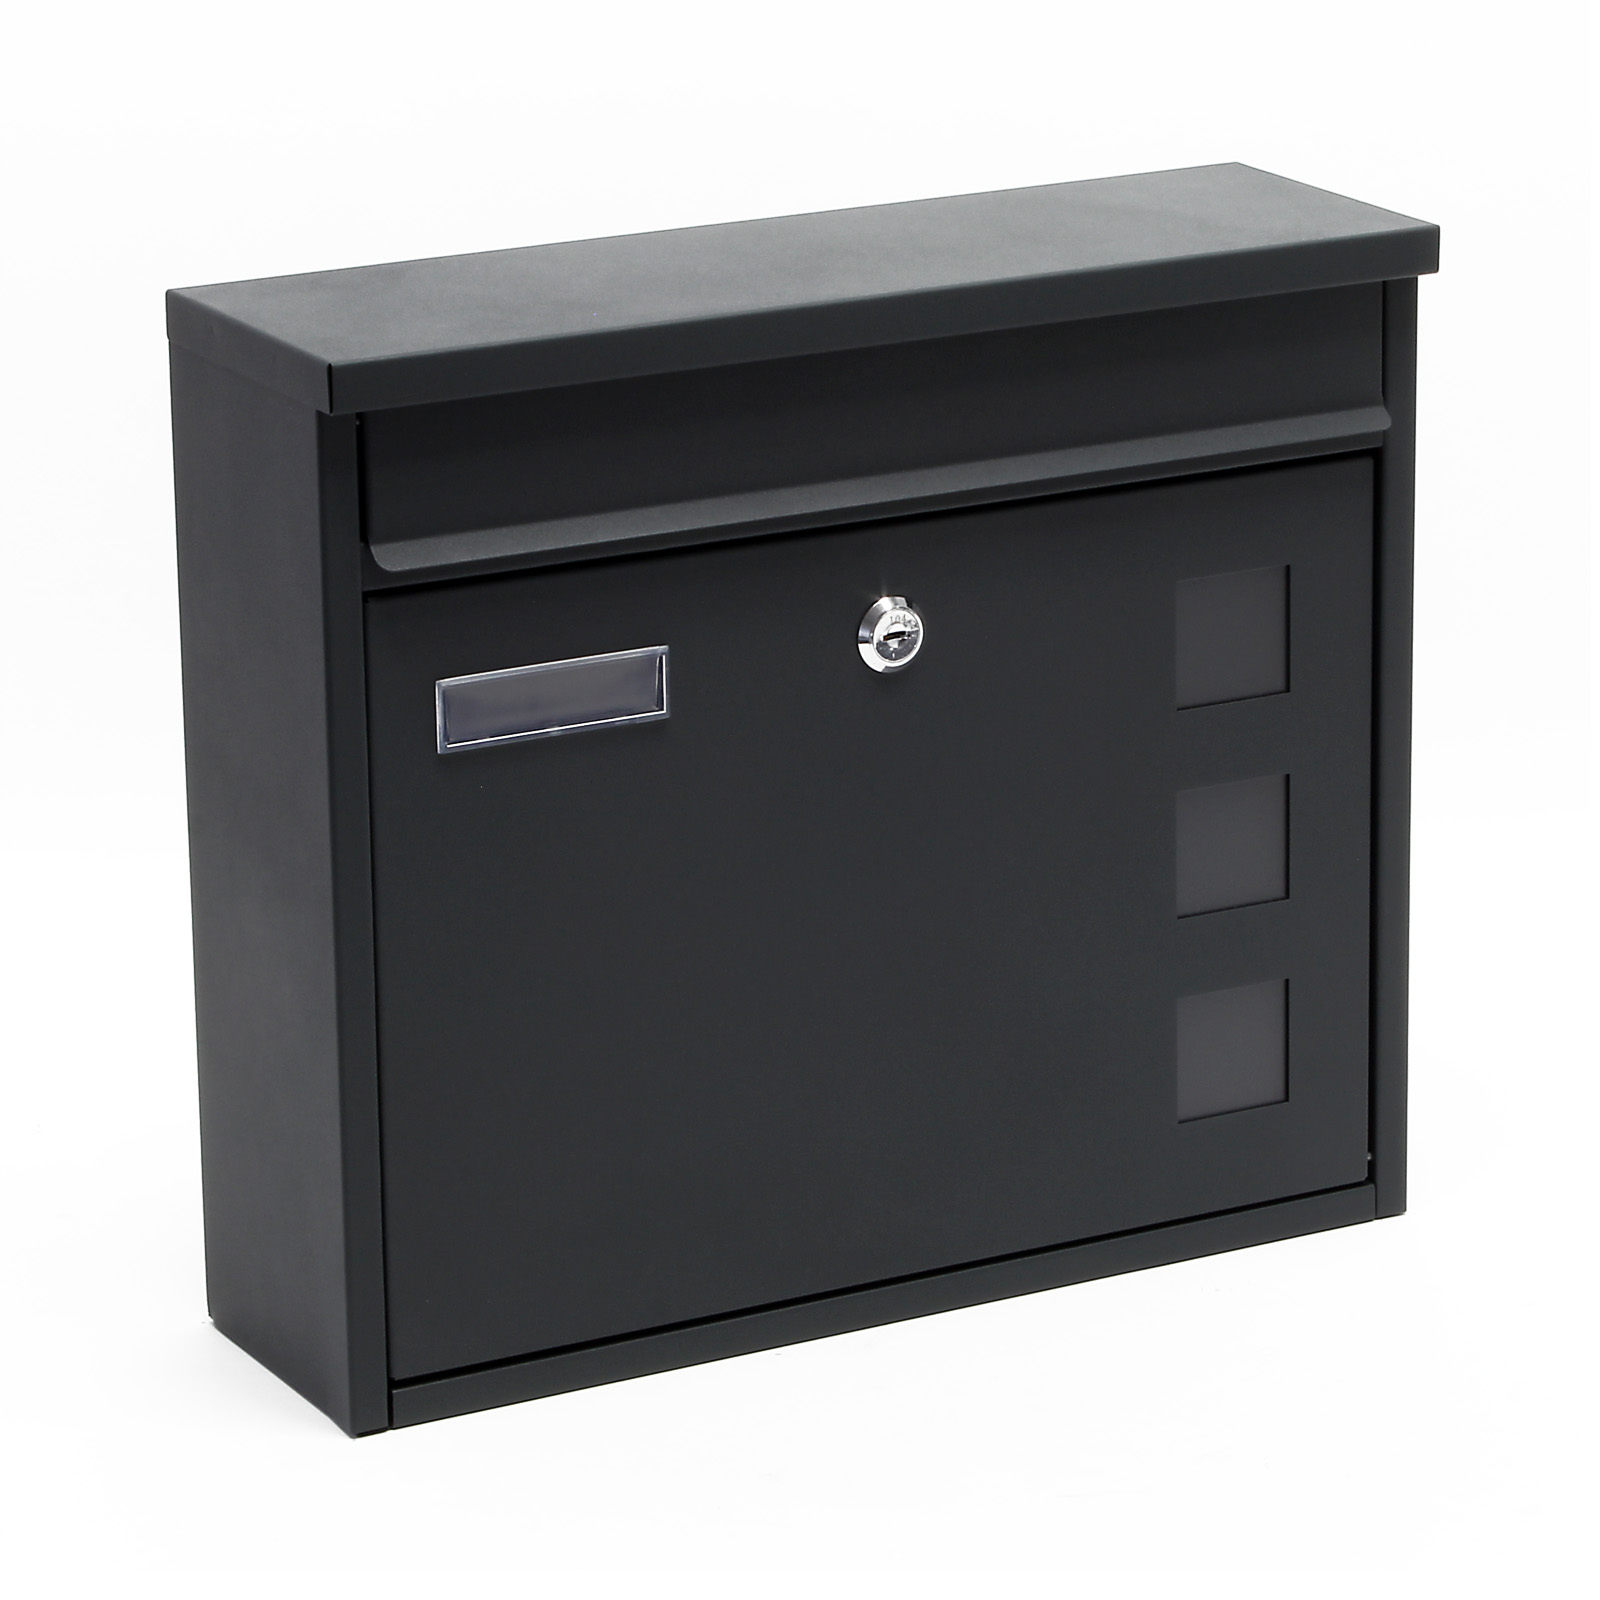 briefkasten postbox design silber pulverbeschichtet wandbriefkasten mailbox v12 ebay. Black Bedroom Furniture Sets. Home Design Ideas